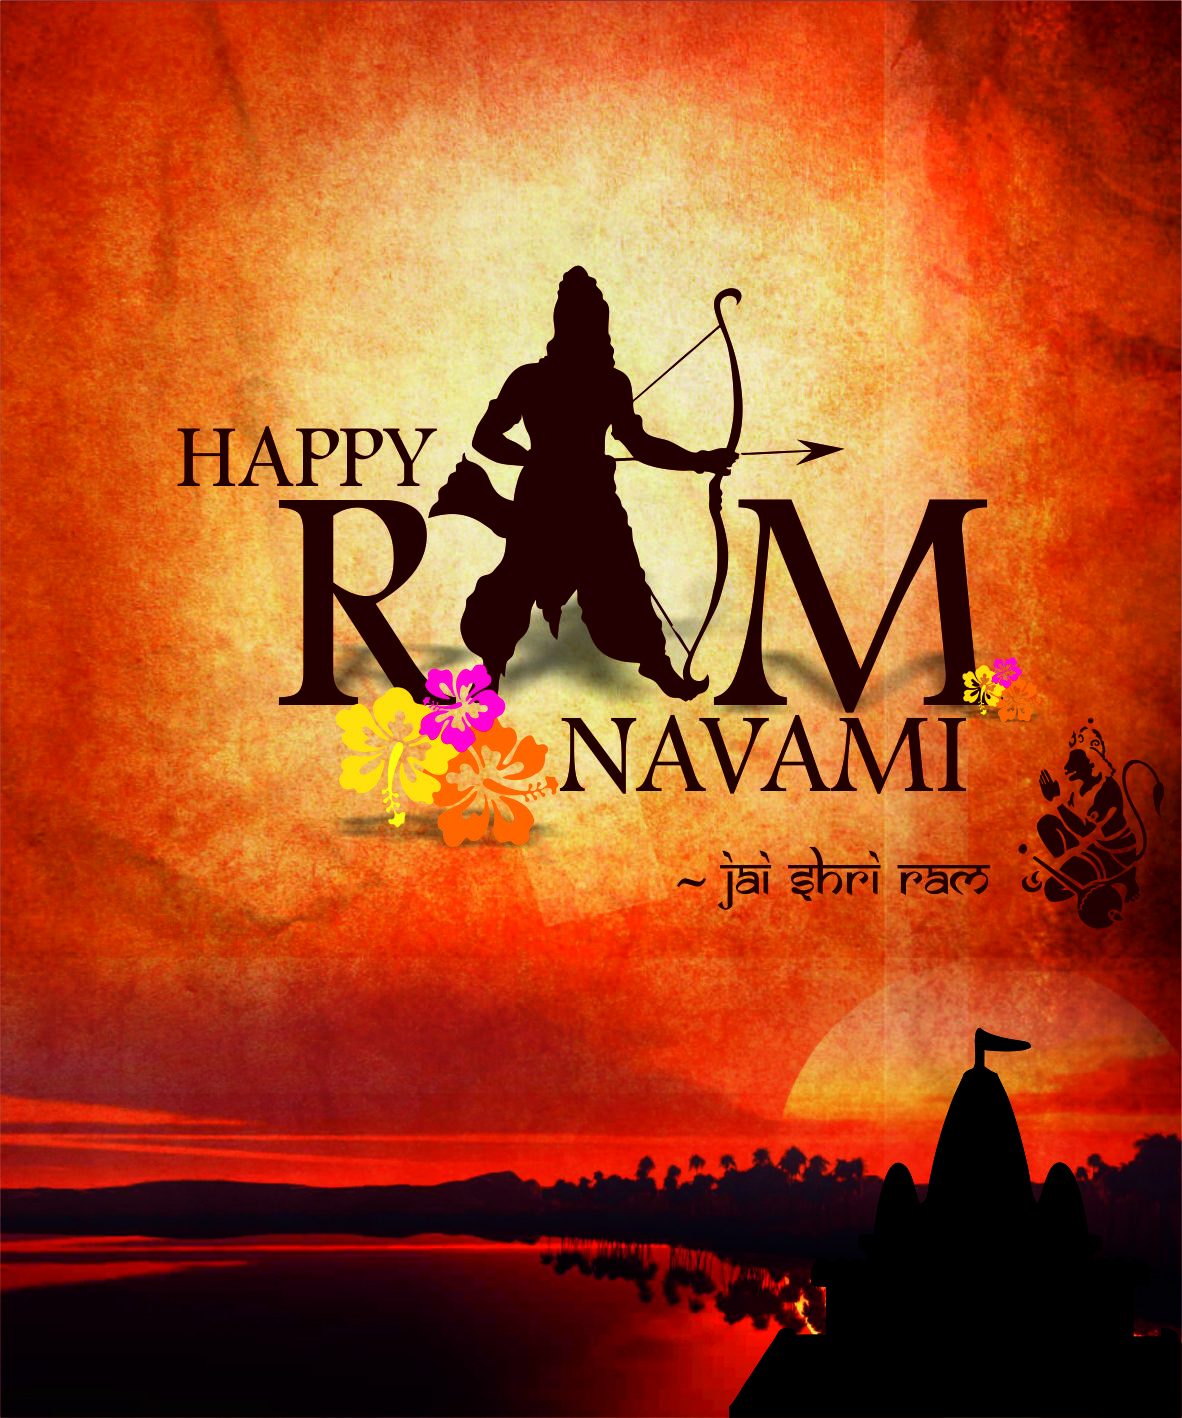 Announcing The Winning Entries For E Greetings For Ram Navami 2016